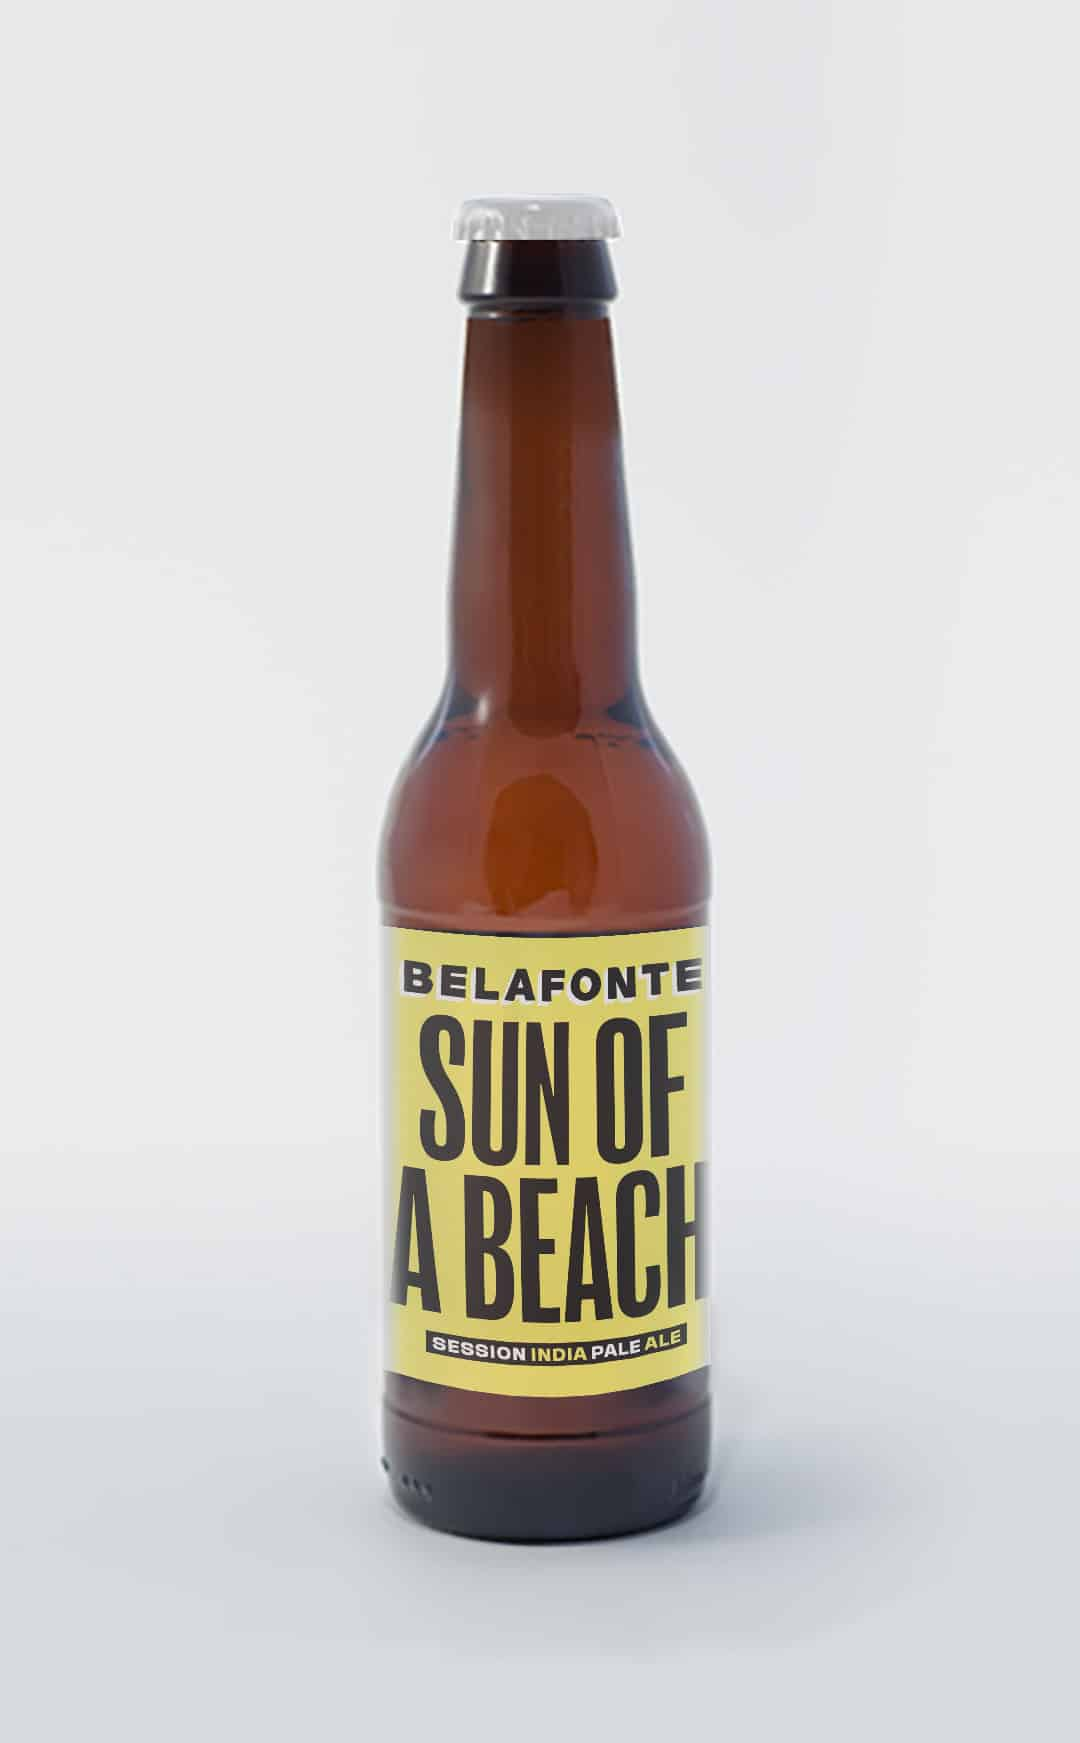 Bière Artisanale Belafonte Brewing Co - Sun Of A Beach